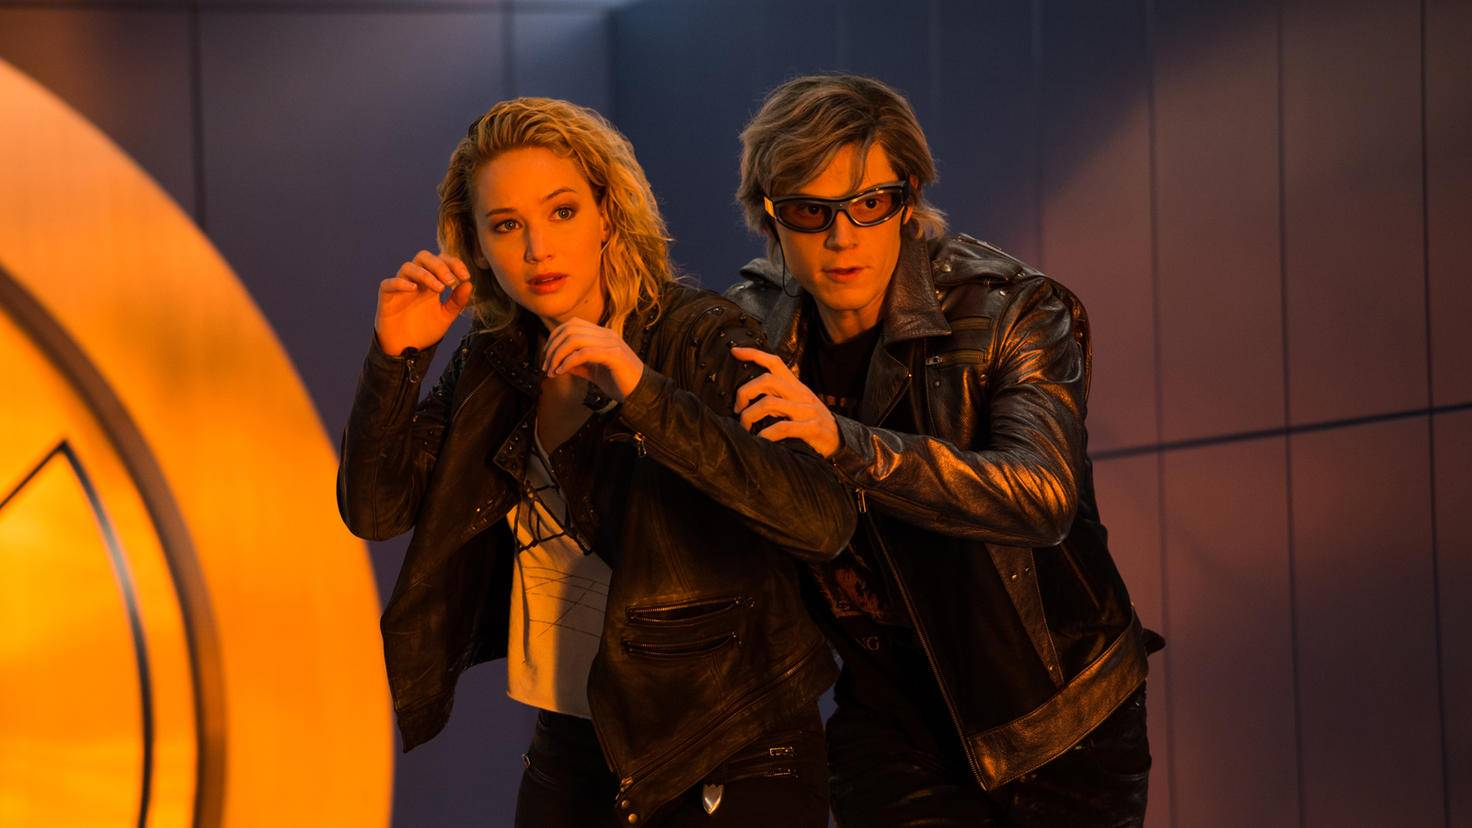 Jennifer Lawrence und Evan Peters als Raven und Quicksilver in X-Men: Apocalypse